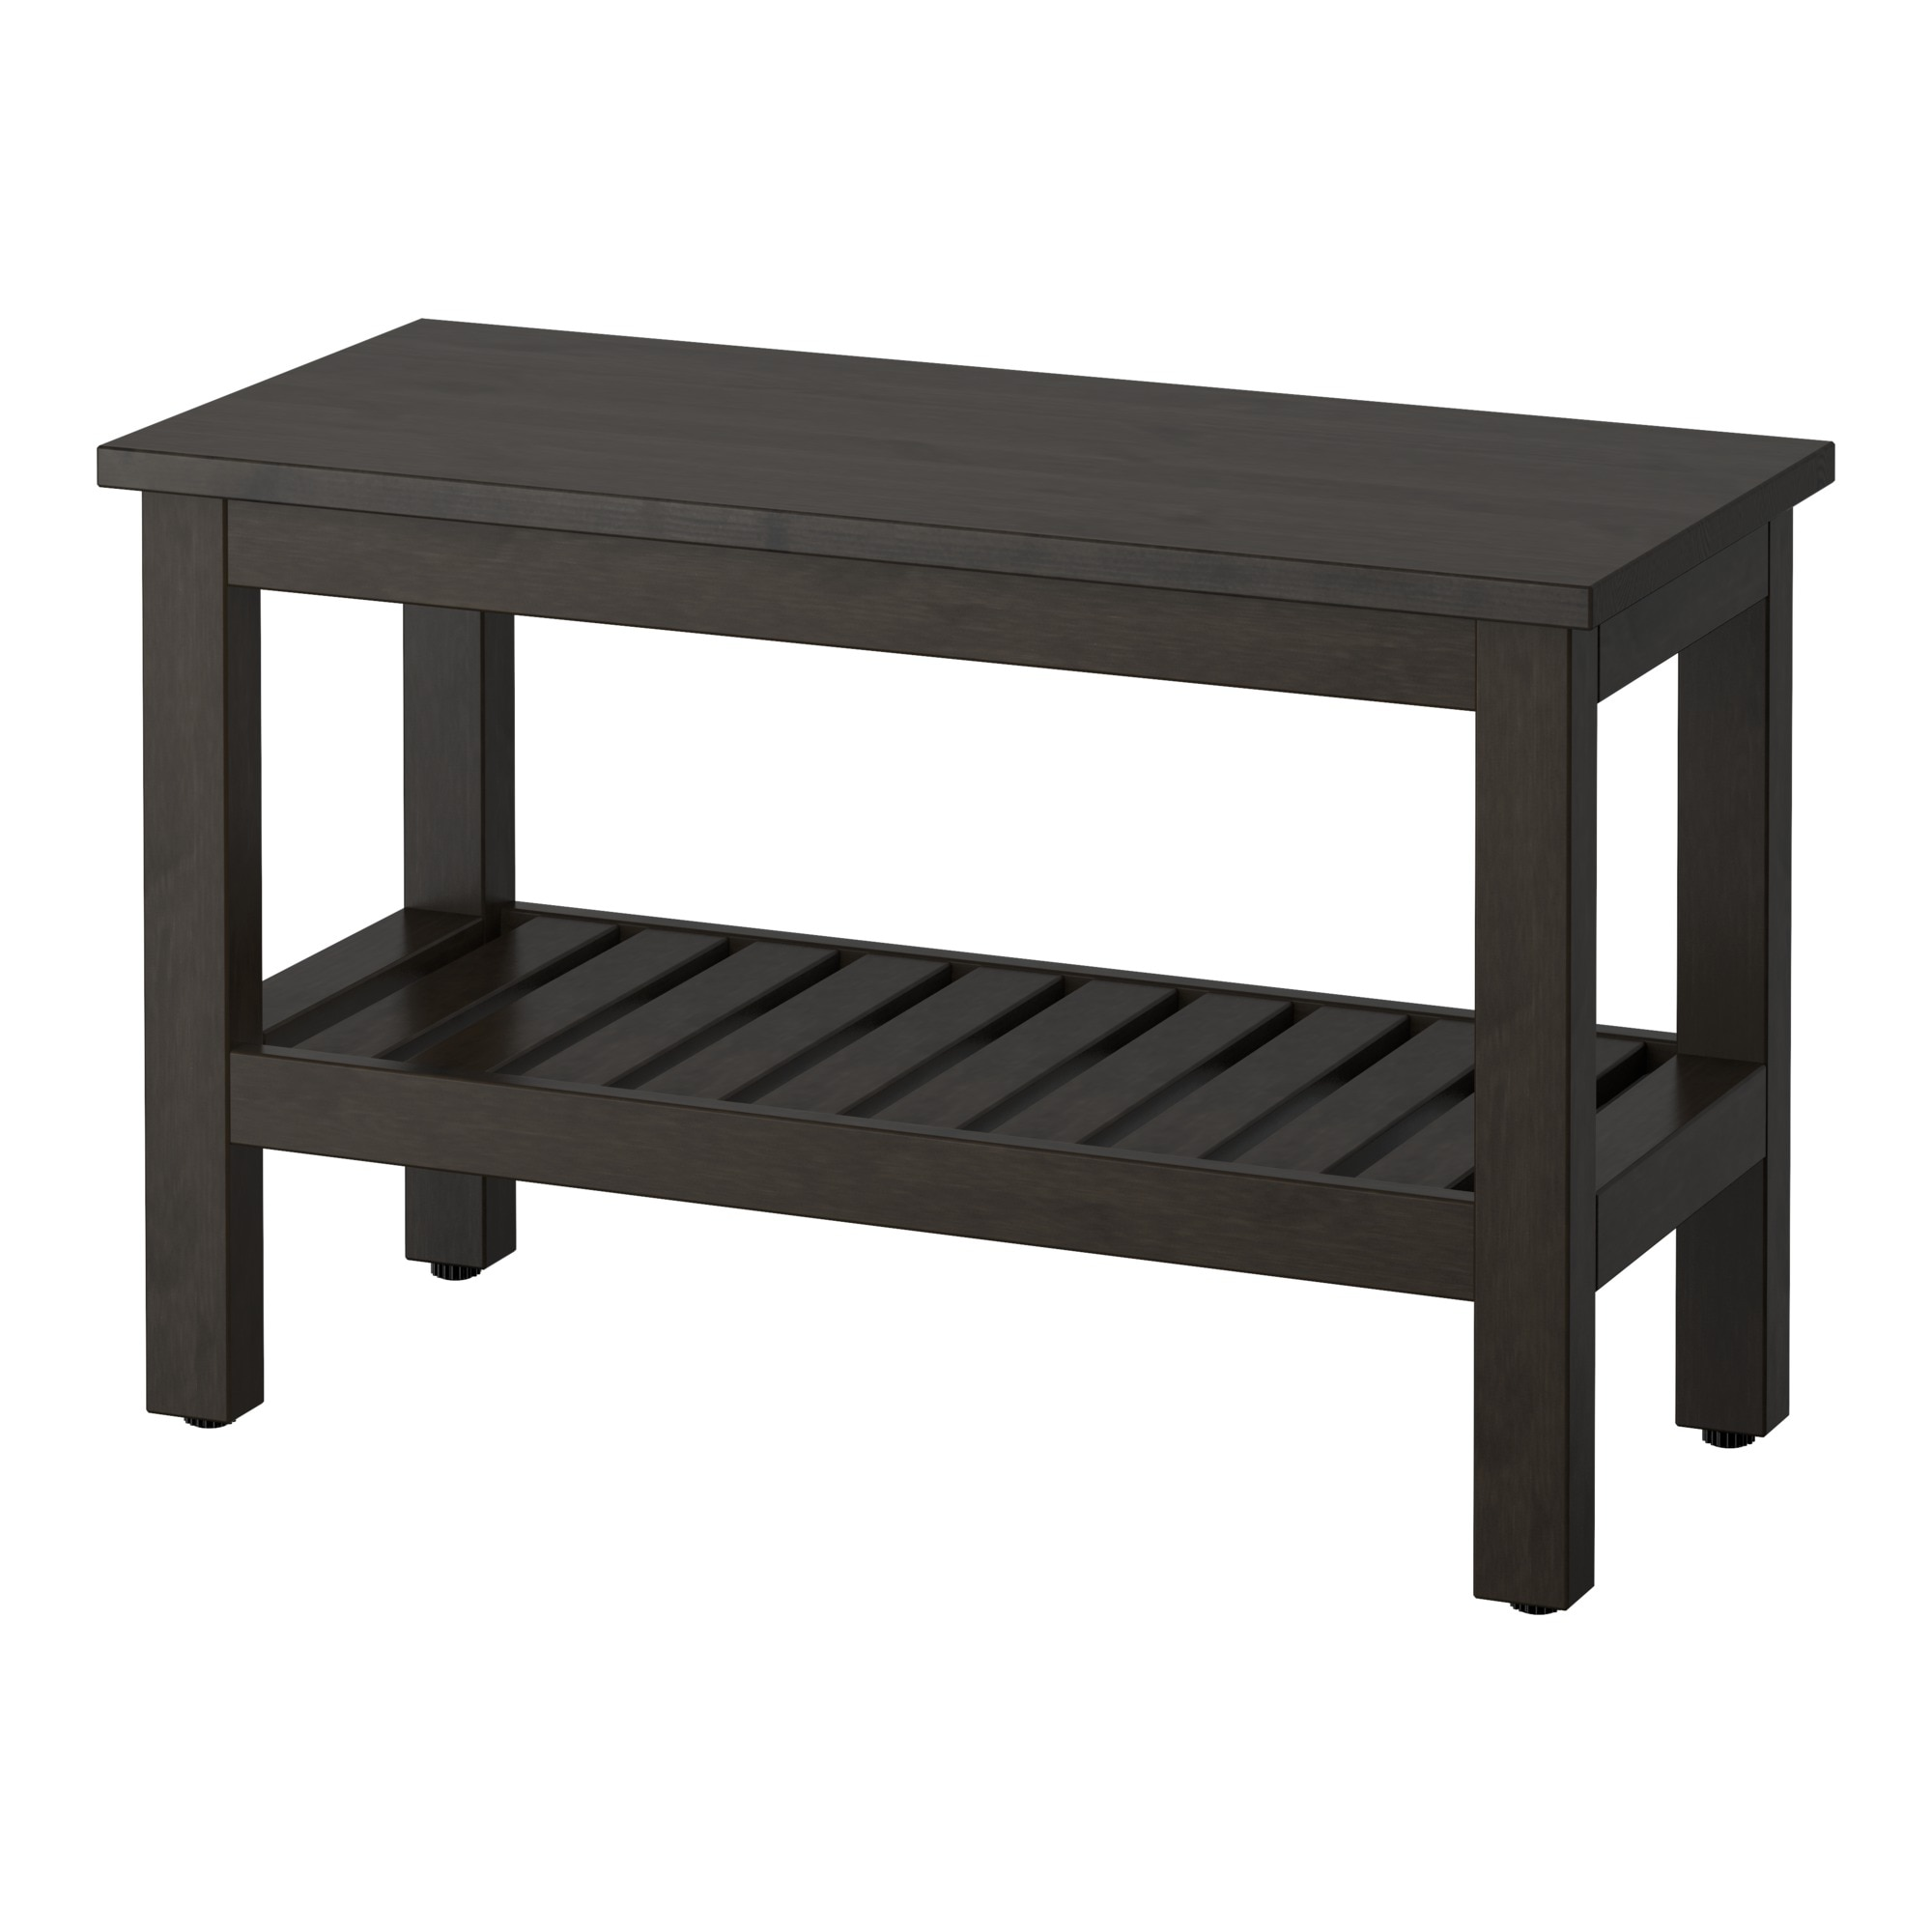 High Quality HEMNES Bench   Black Brown Stain   IKEA